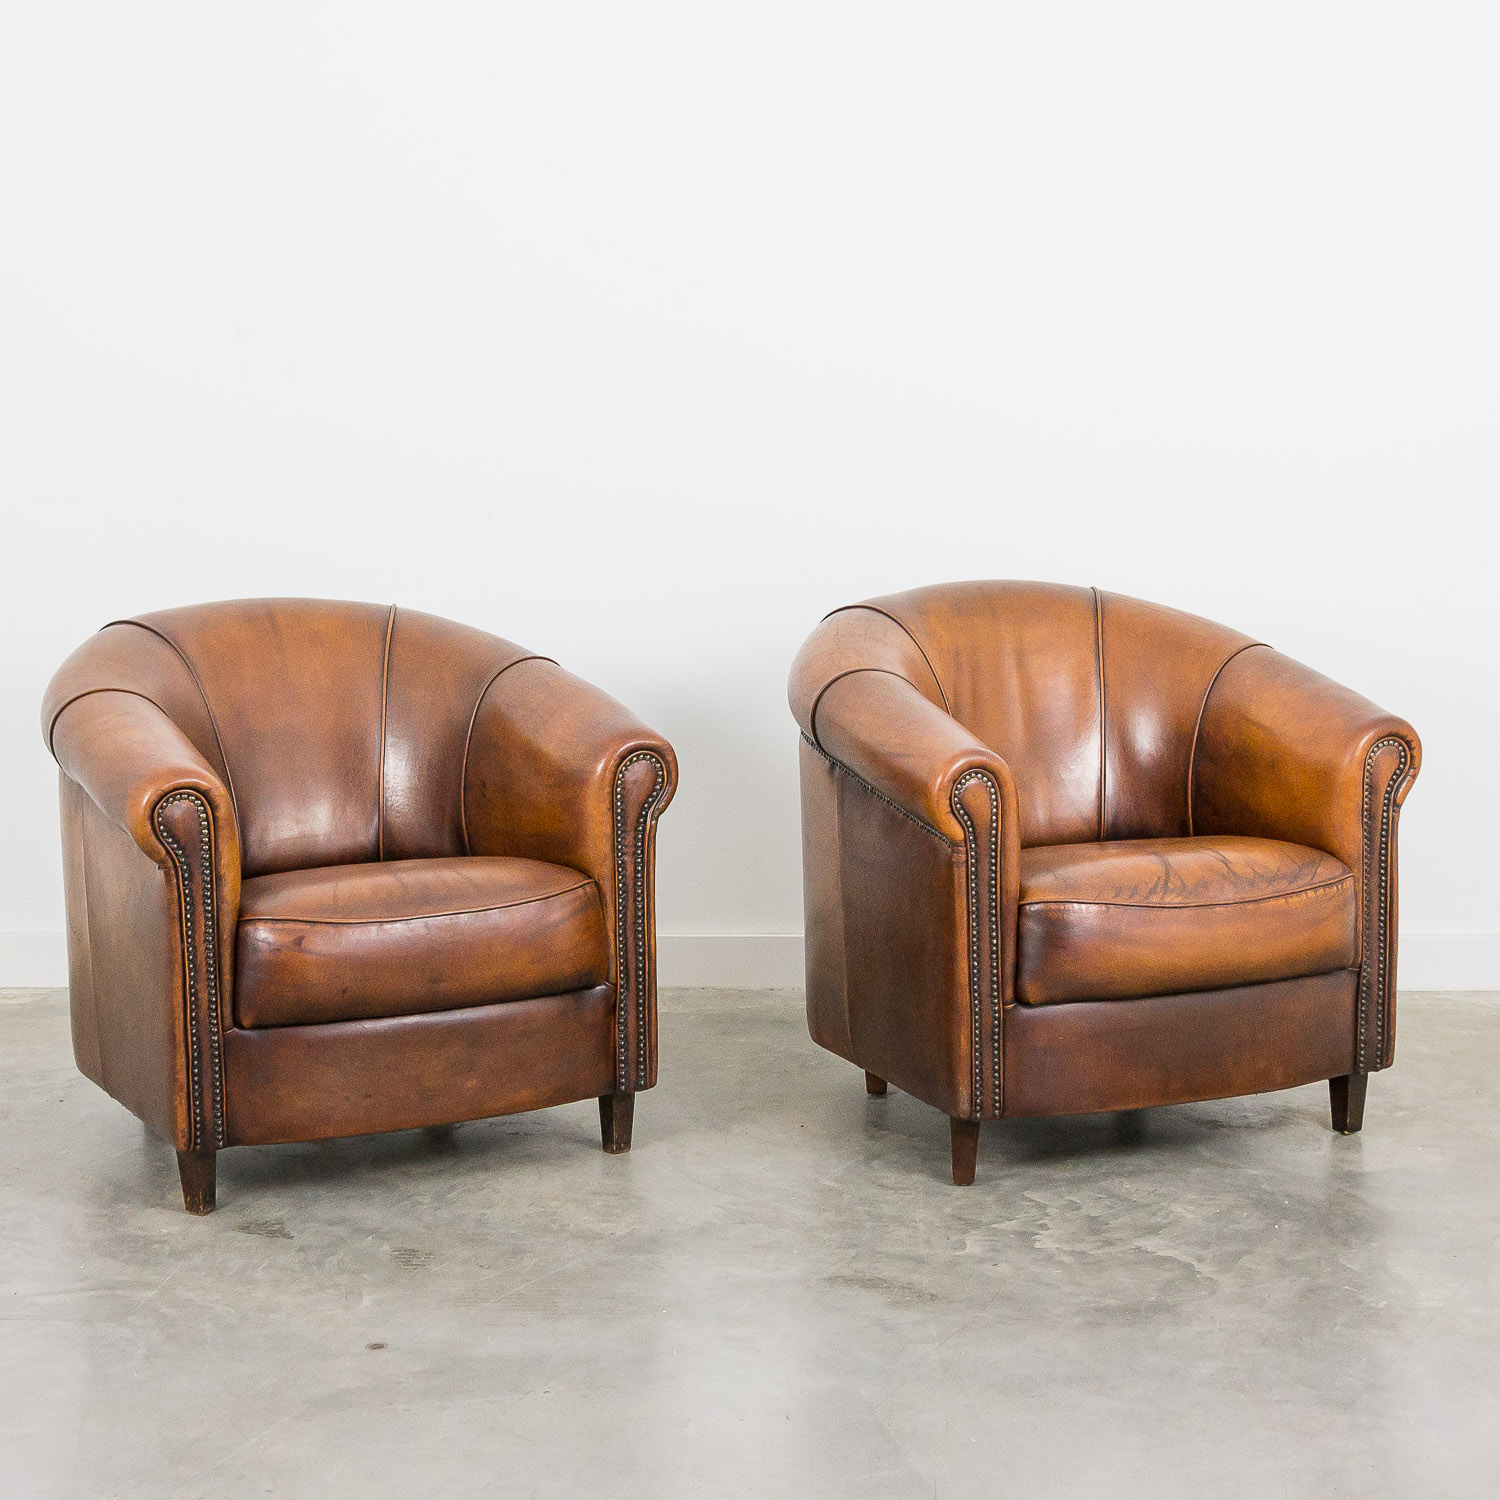 Vintage leather club armchair by Joris set of 2